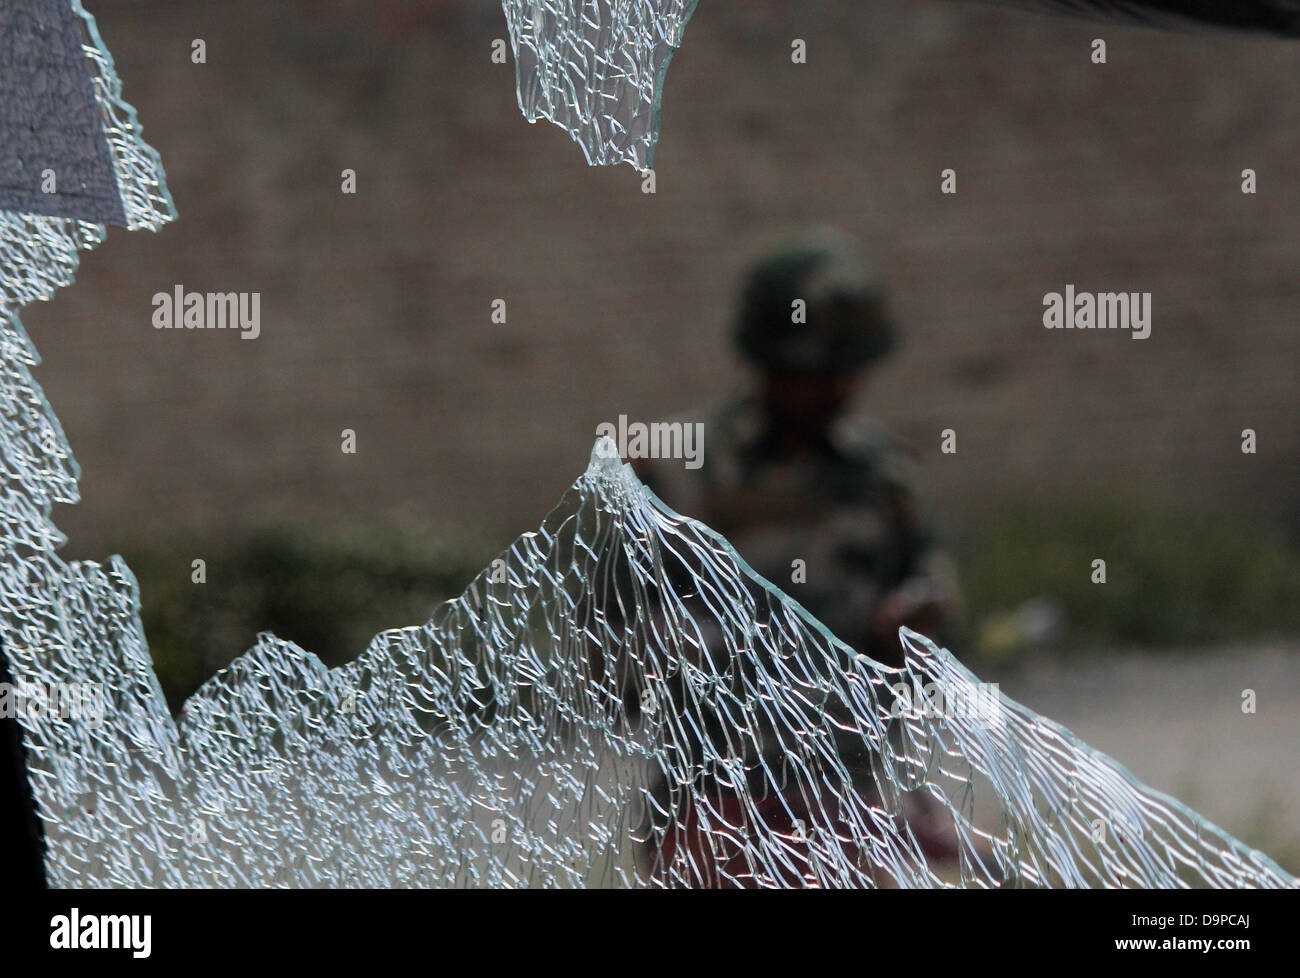 Indian Trooper Stock Photos & Indian Trooper Stock Images - Alamy